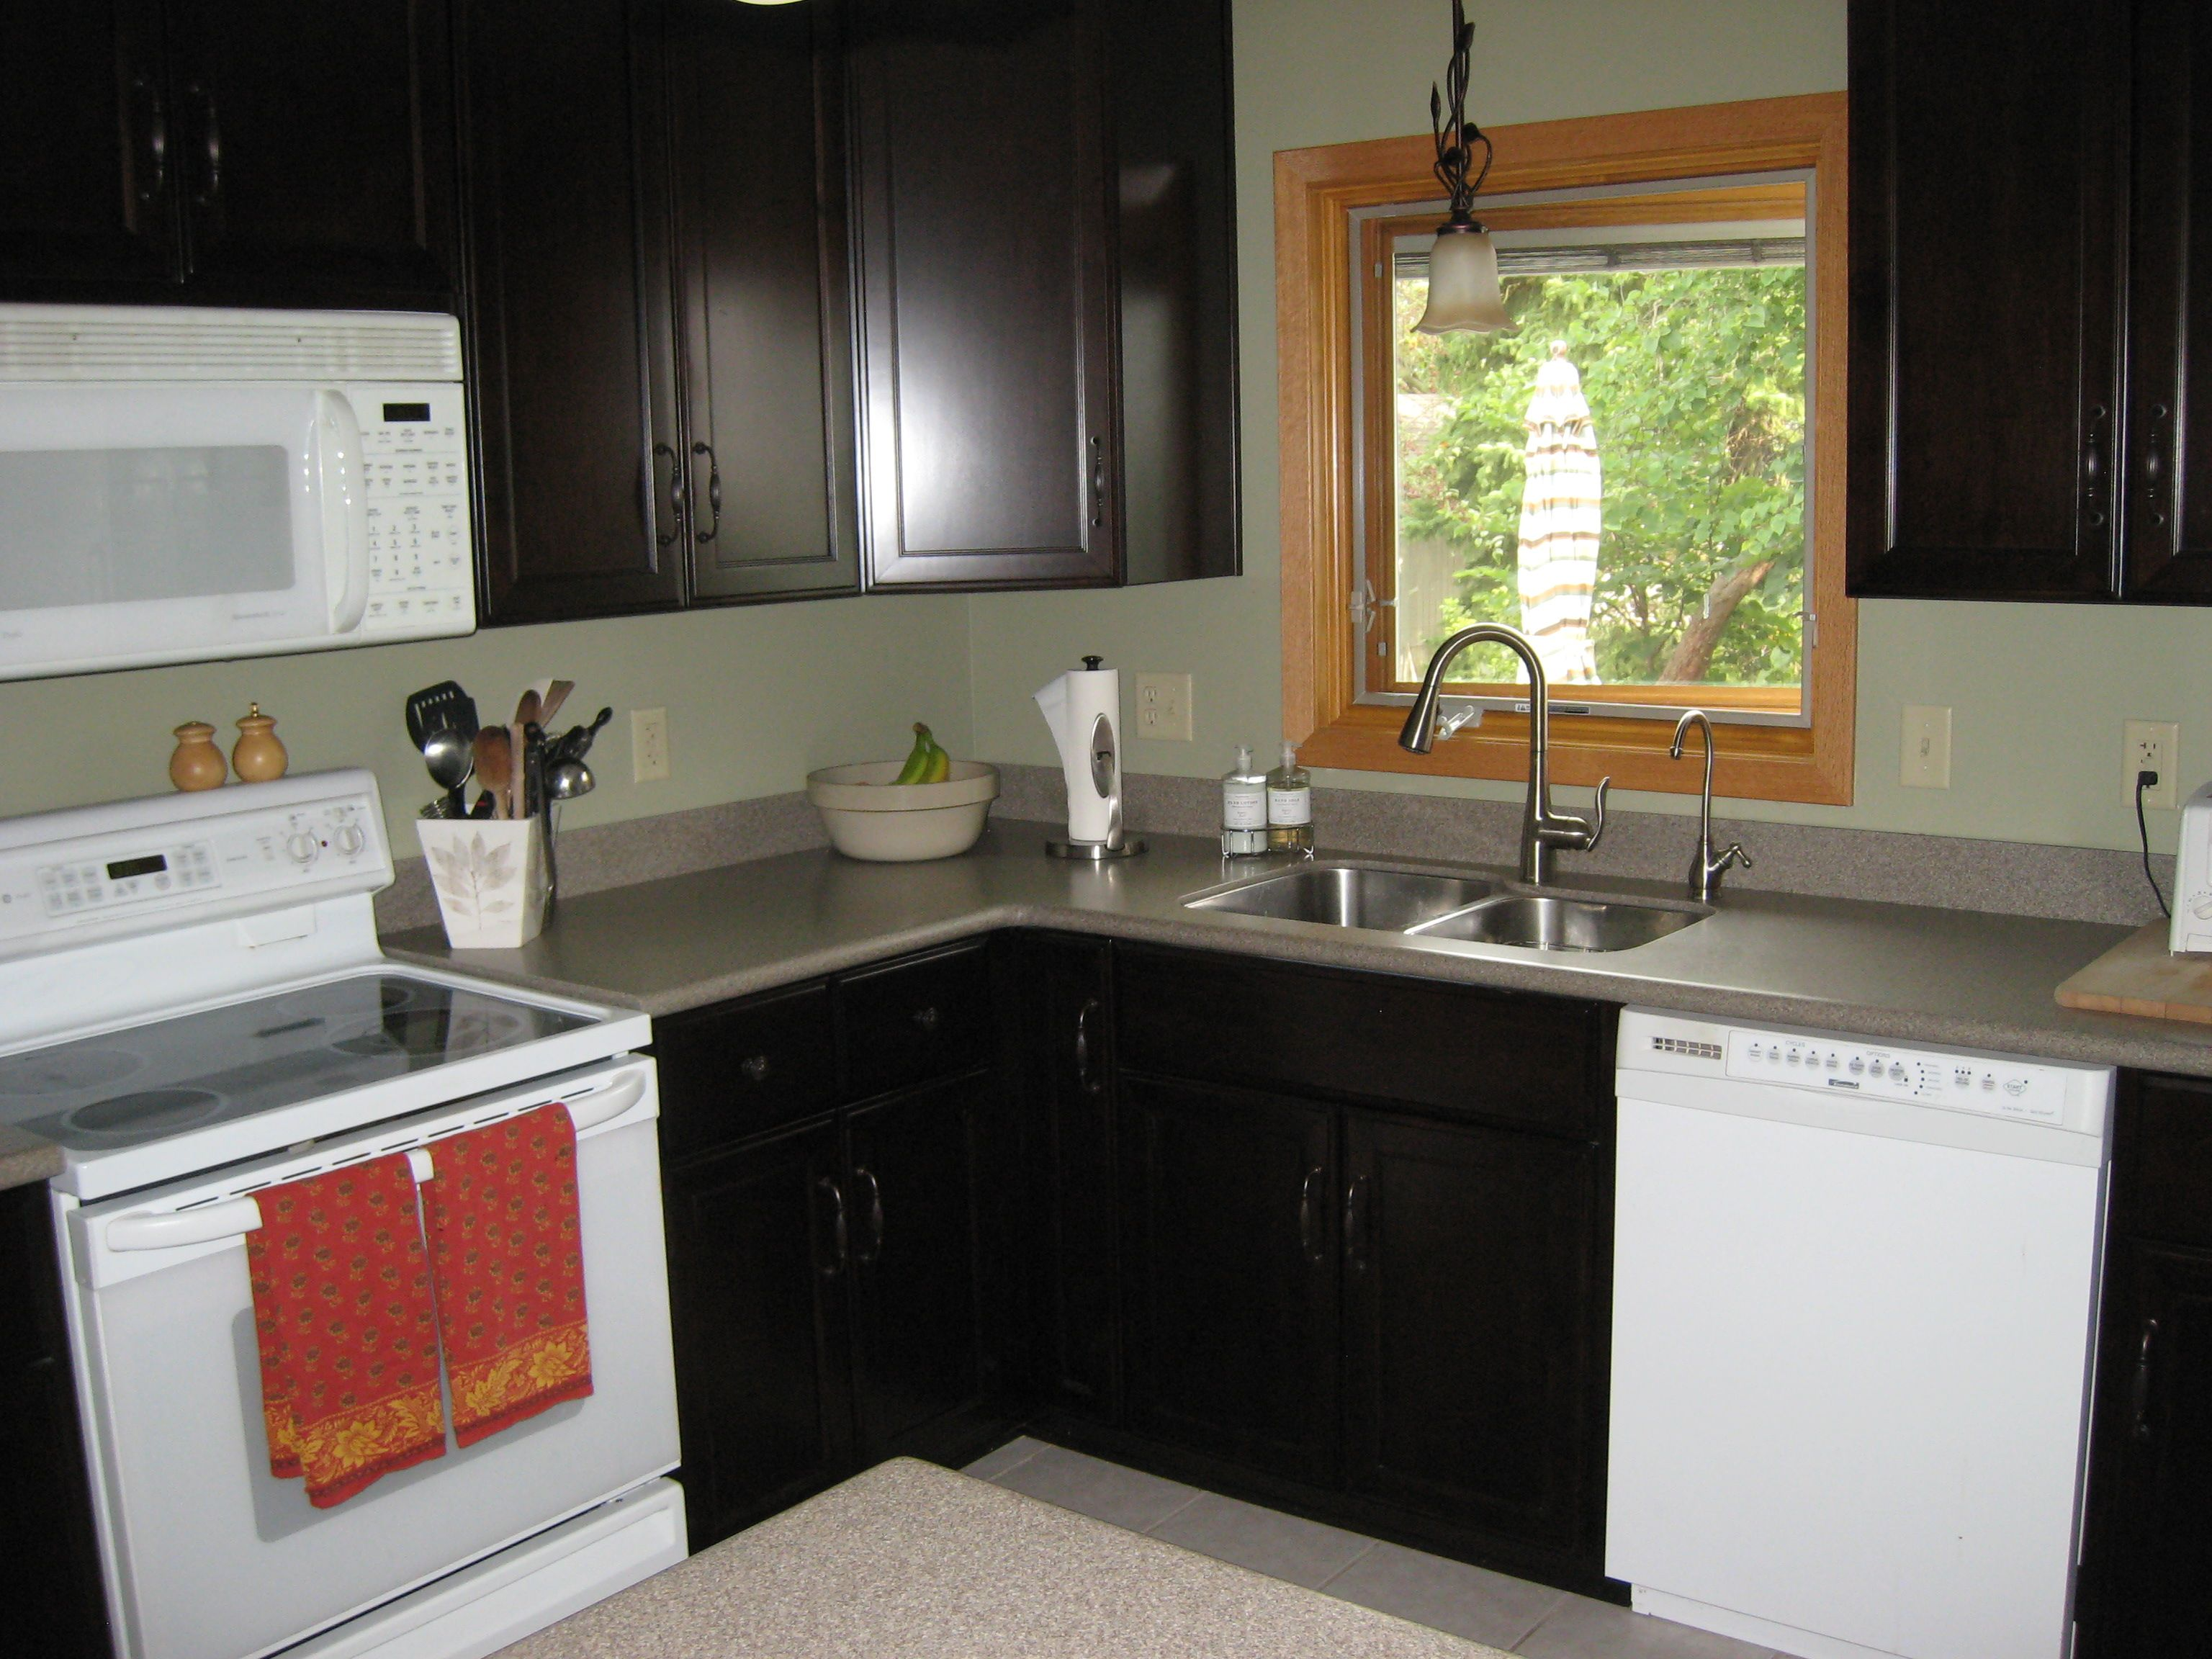 Small L SHAPED KITCHEN like yours with dark cabinets and white